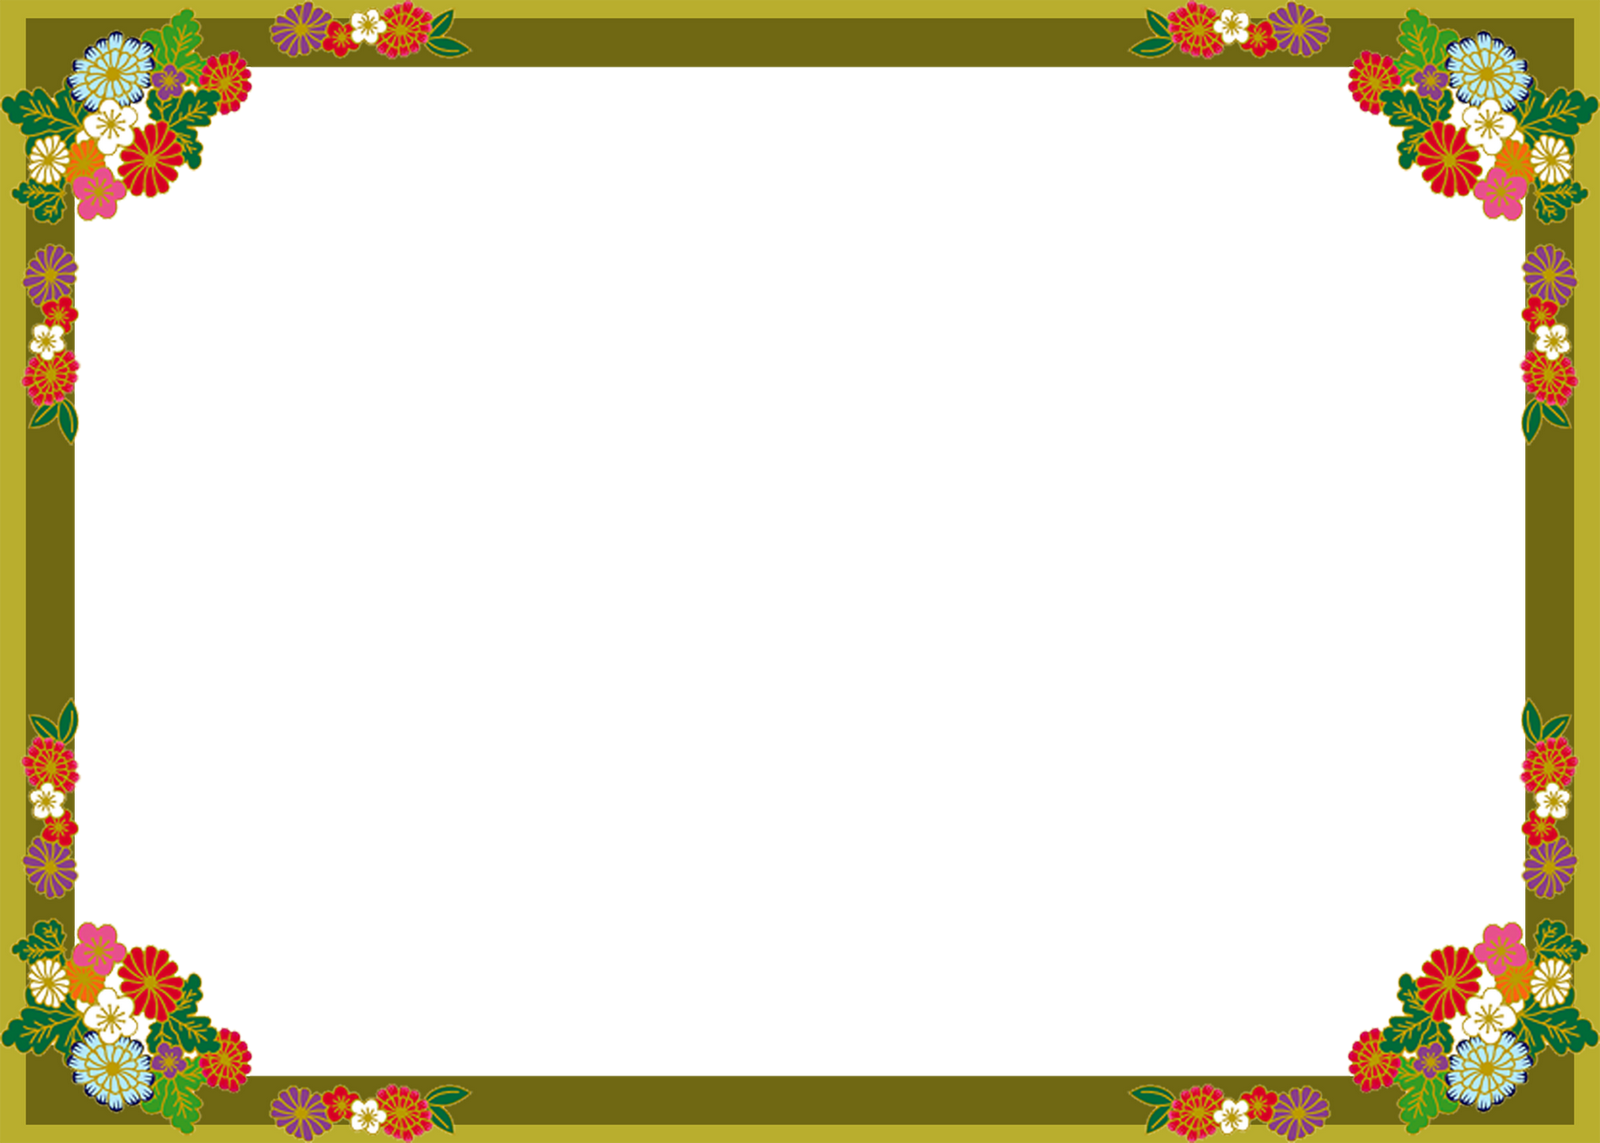 Border designs png. Clipart corner beautiful borders